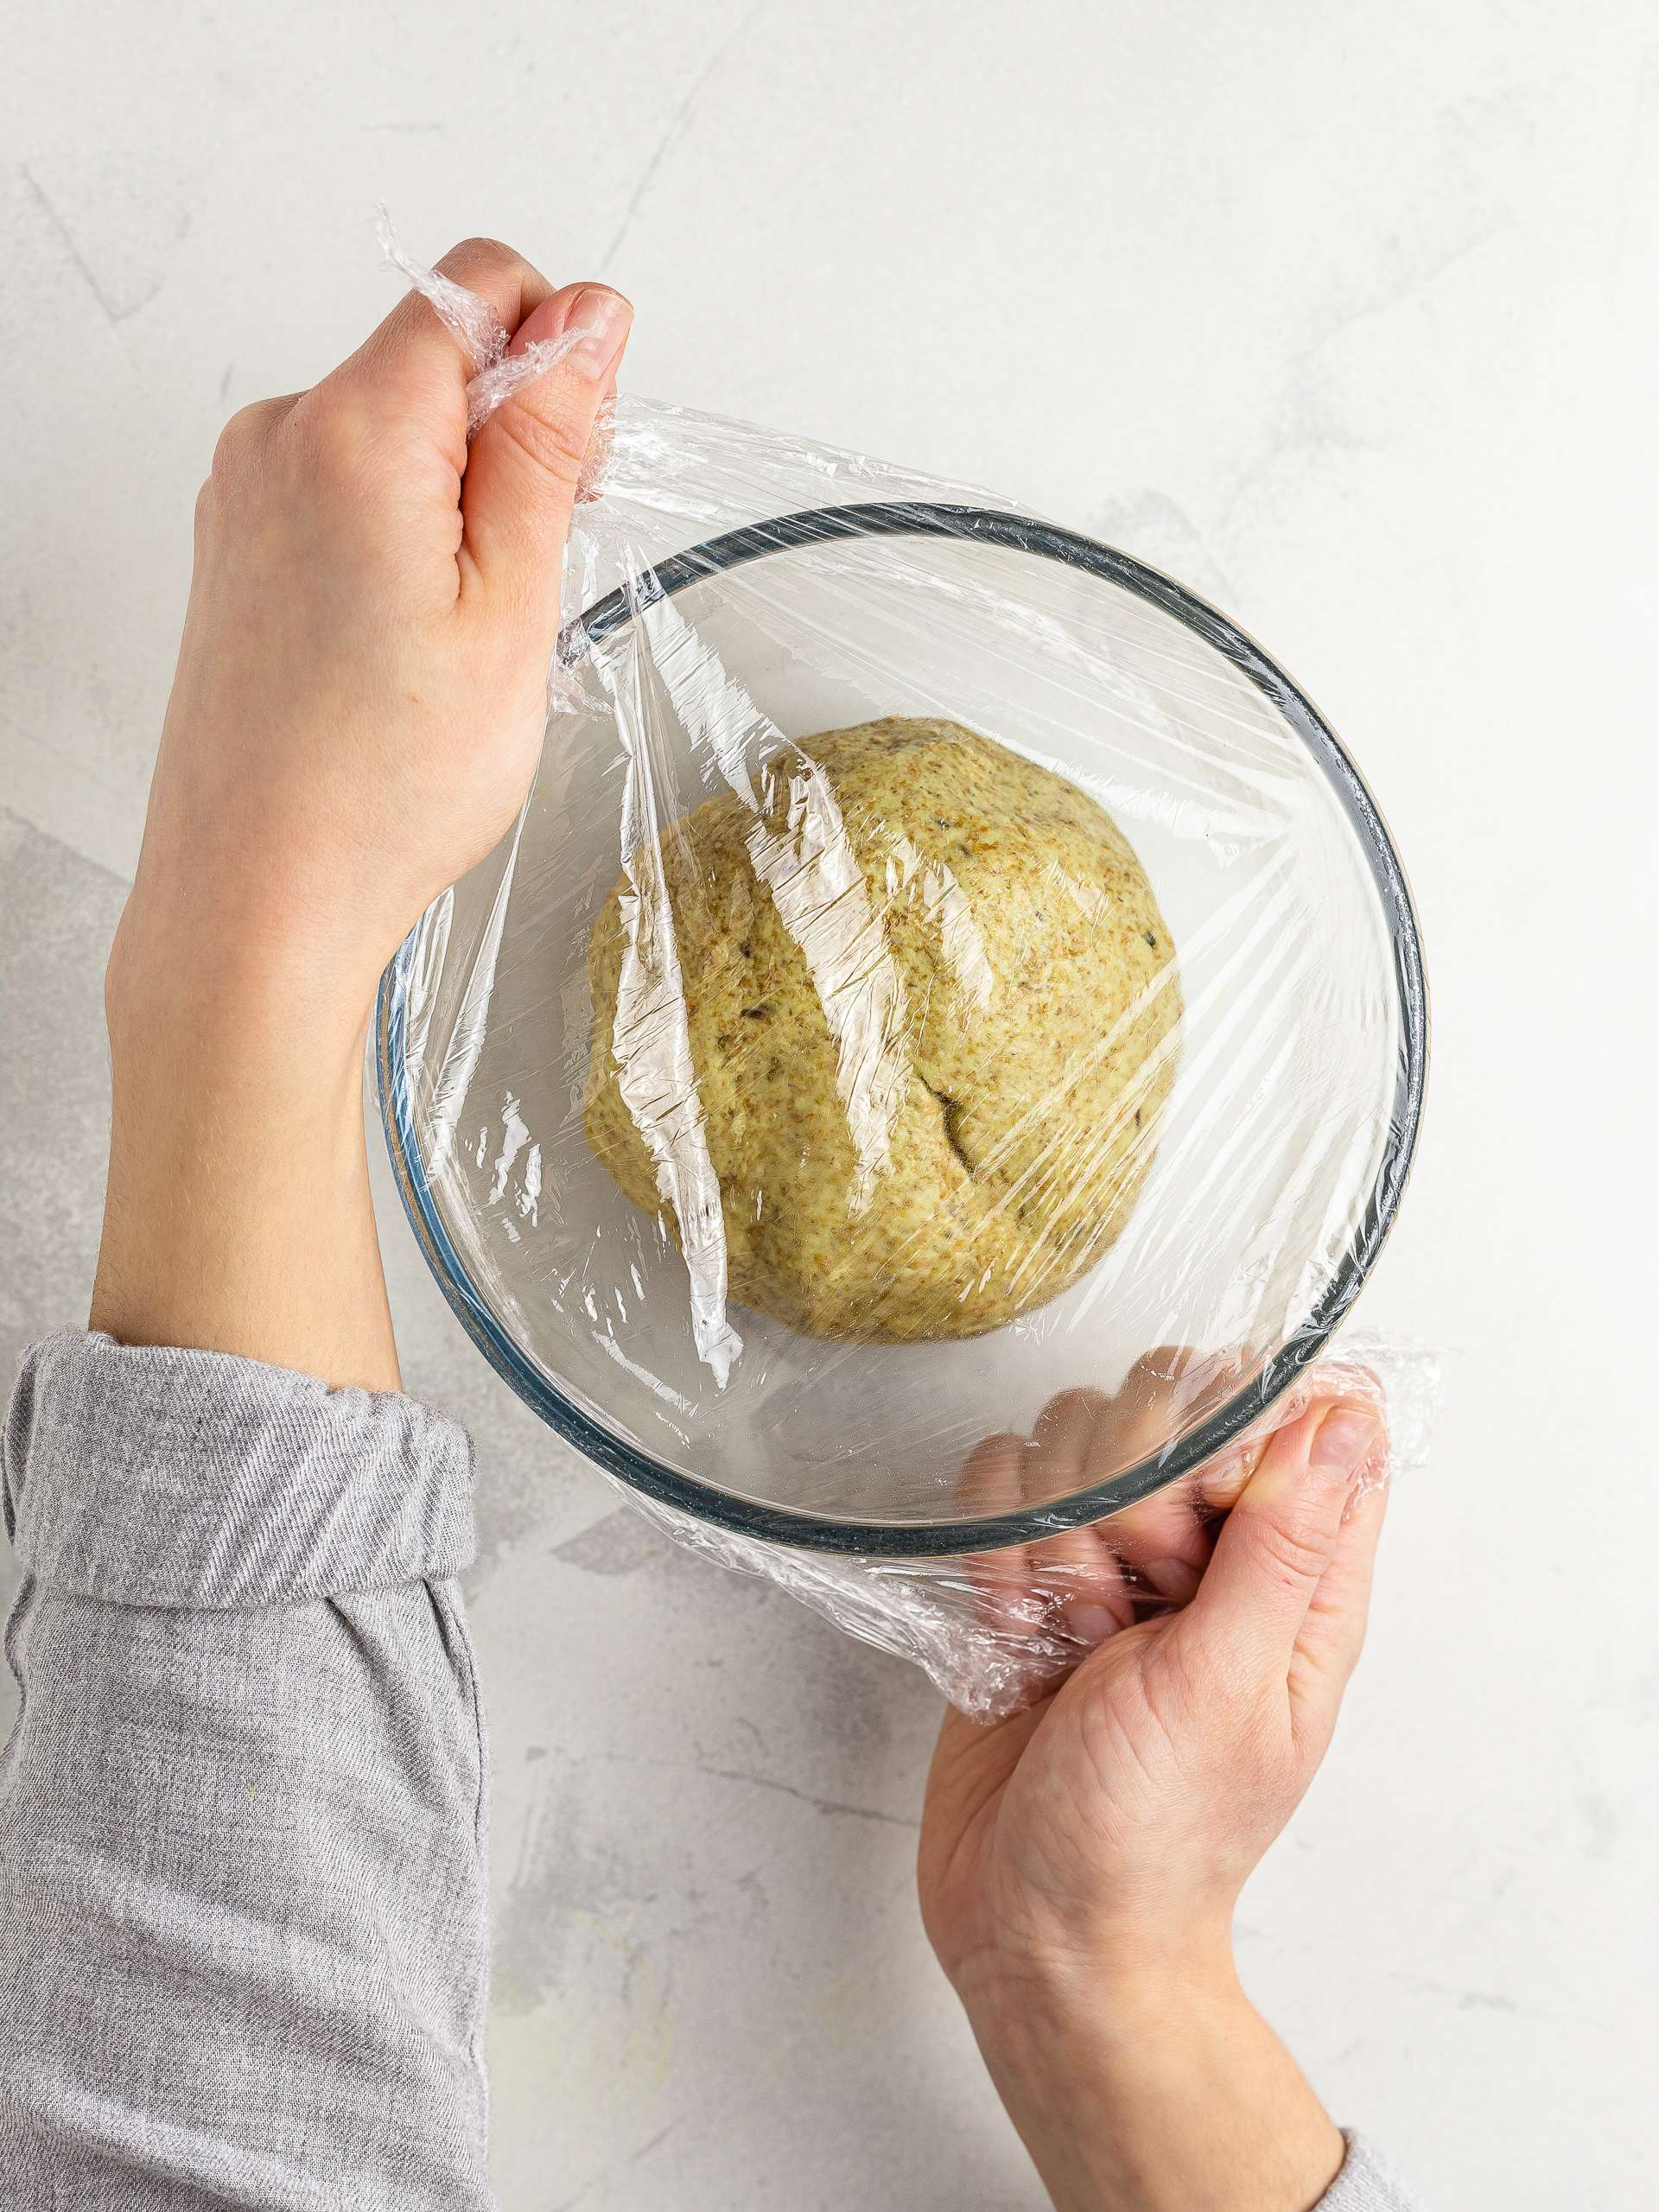 wrapping chapati dough in cling film